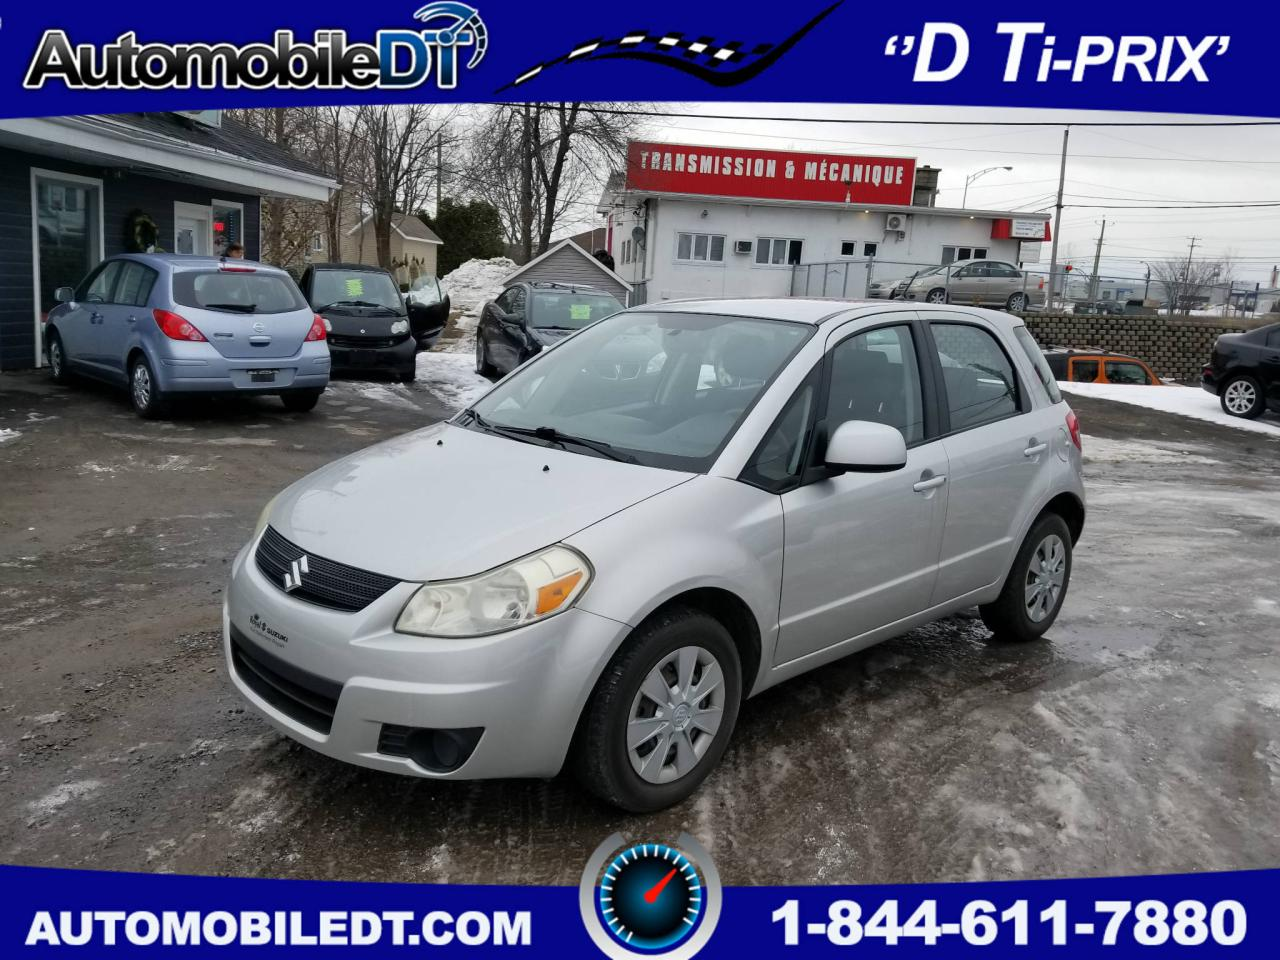 Used 2007 Suzuki SX4 5dr HB JX FWD for Sale in Saint-romuald, Quebec